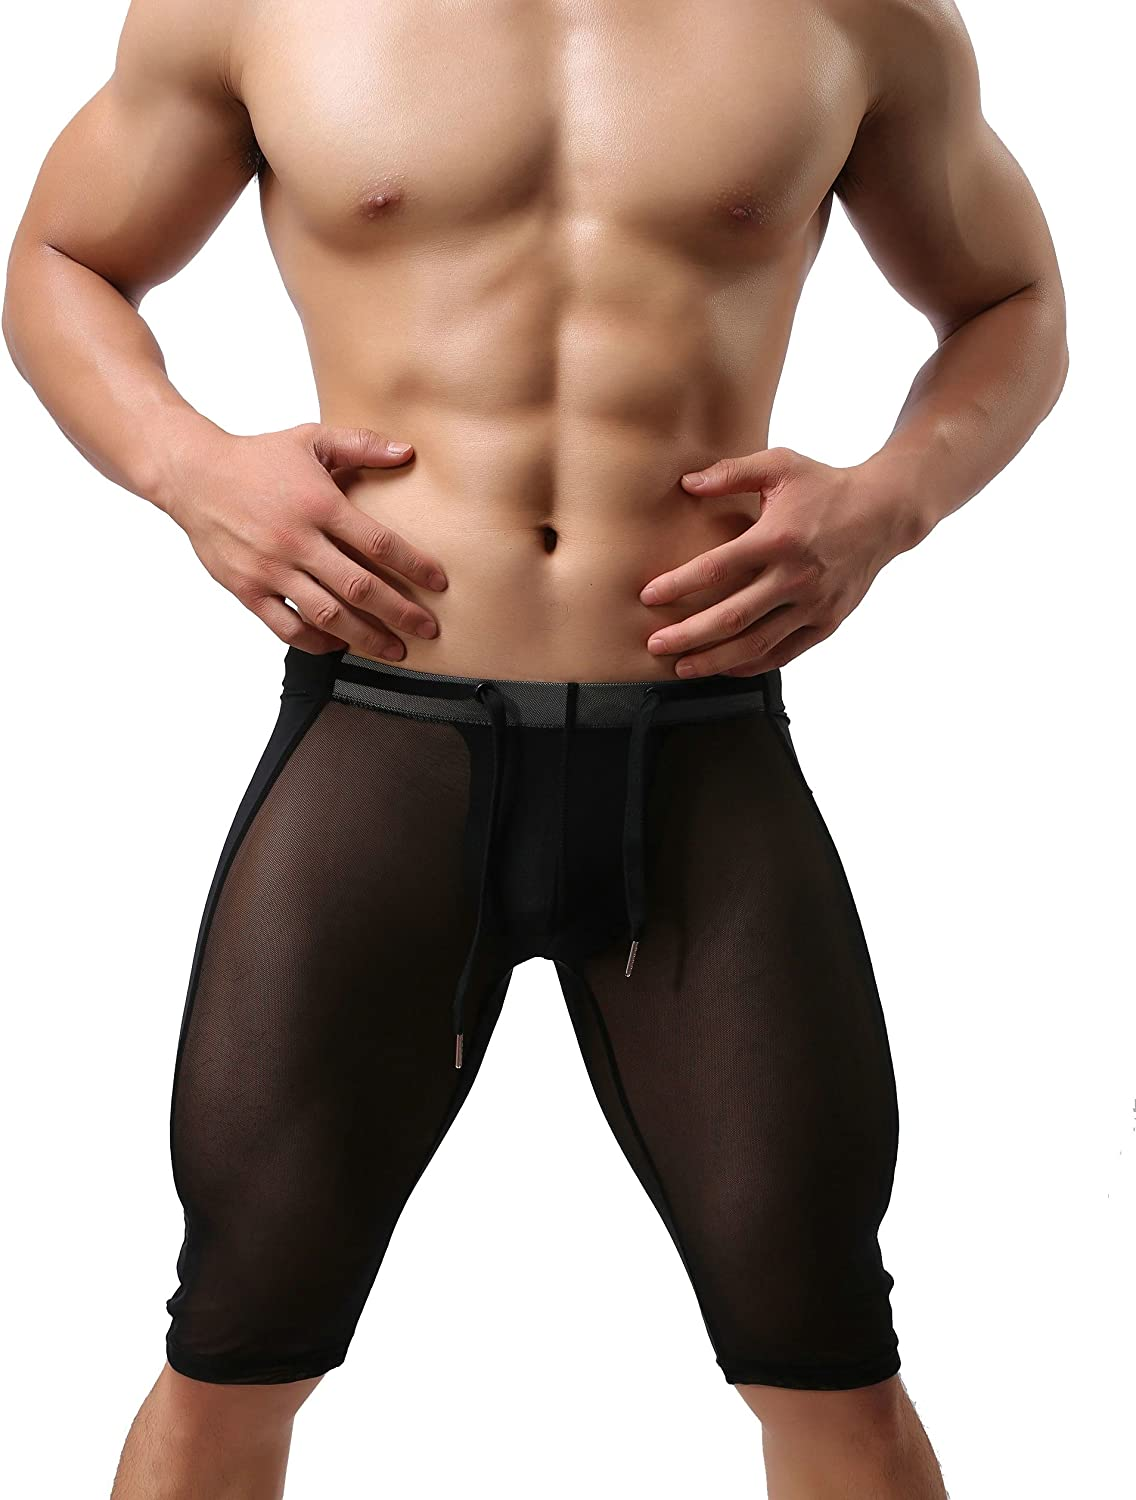 UltraHot Multi-Functional Sports Mens Shorts MuscleMate UltraHot Mens Compression Shorts